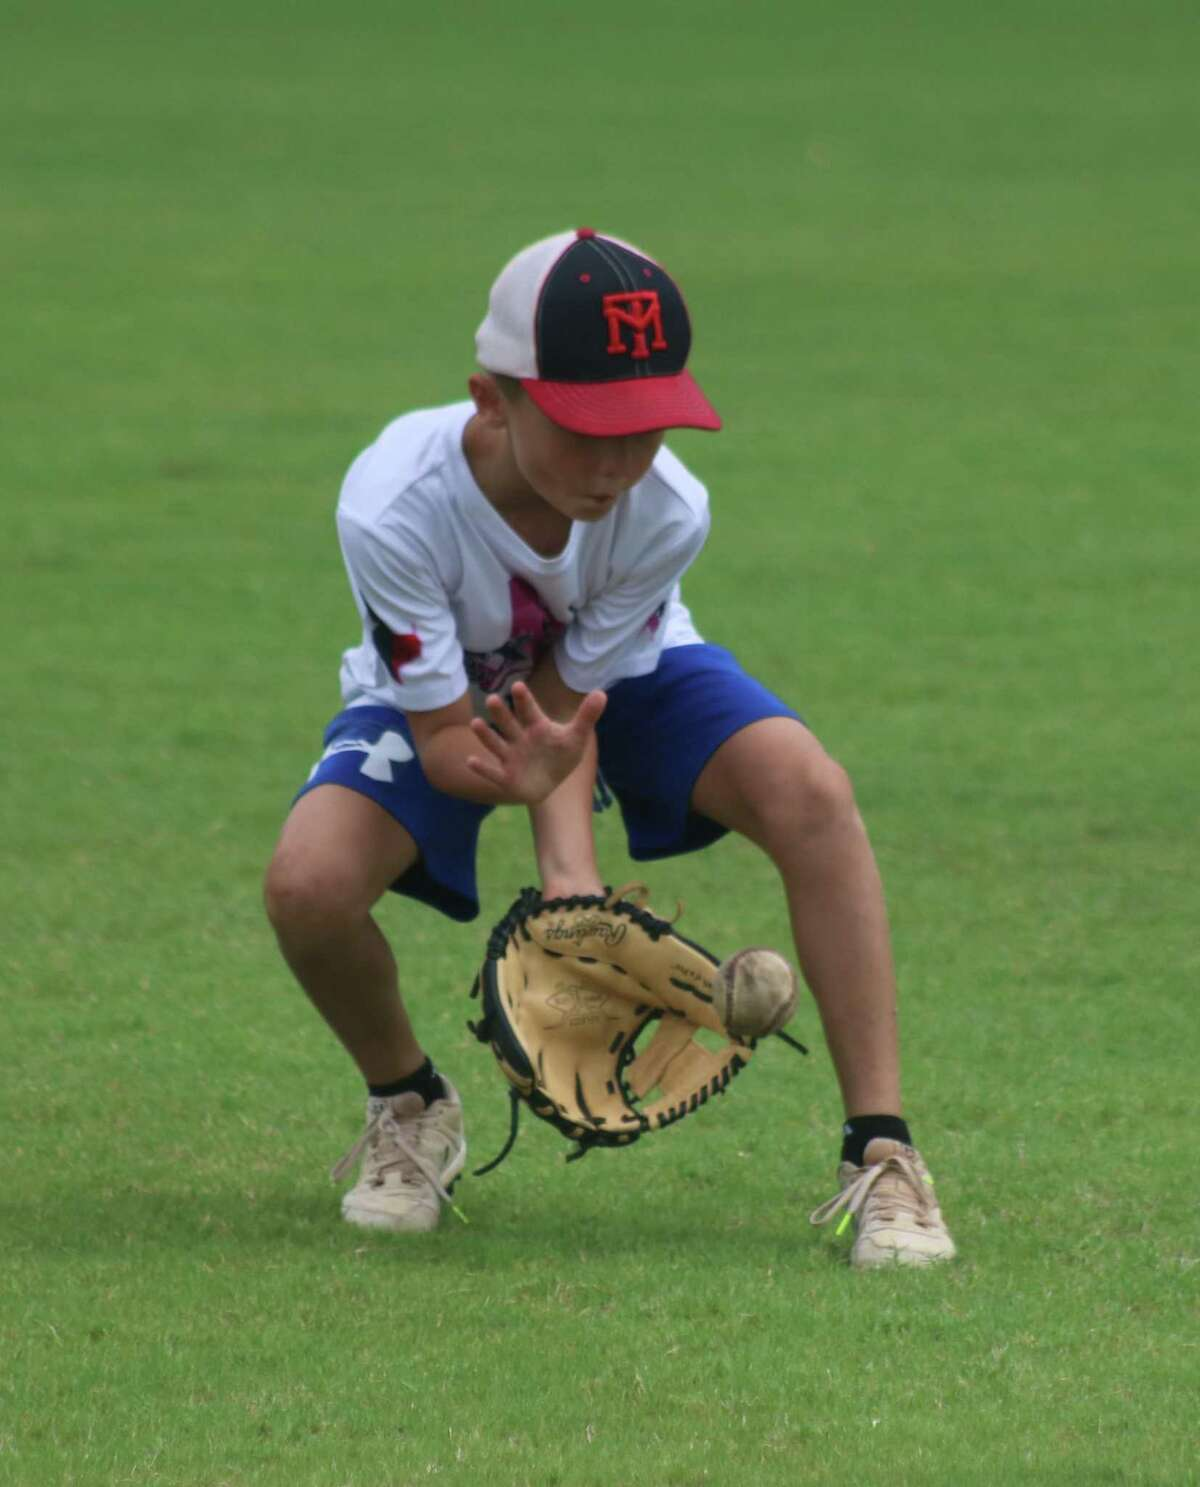 Randy Weaver fields a ground ball during the Deer Park baseball camp last week. The fielding seems to be the easy part. The coaches worked with the kids on the harder part, making accurate throws to their intended target.